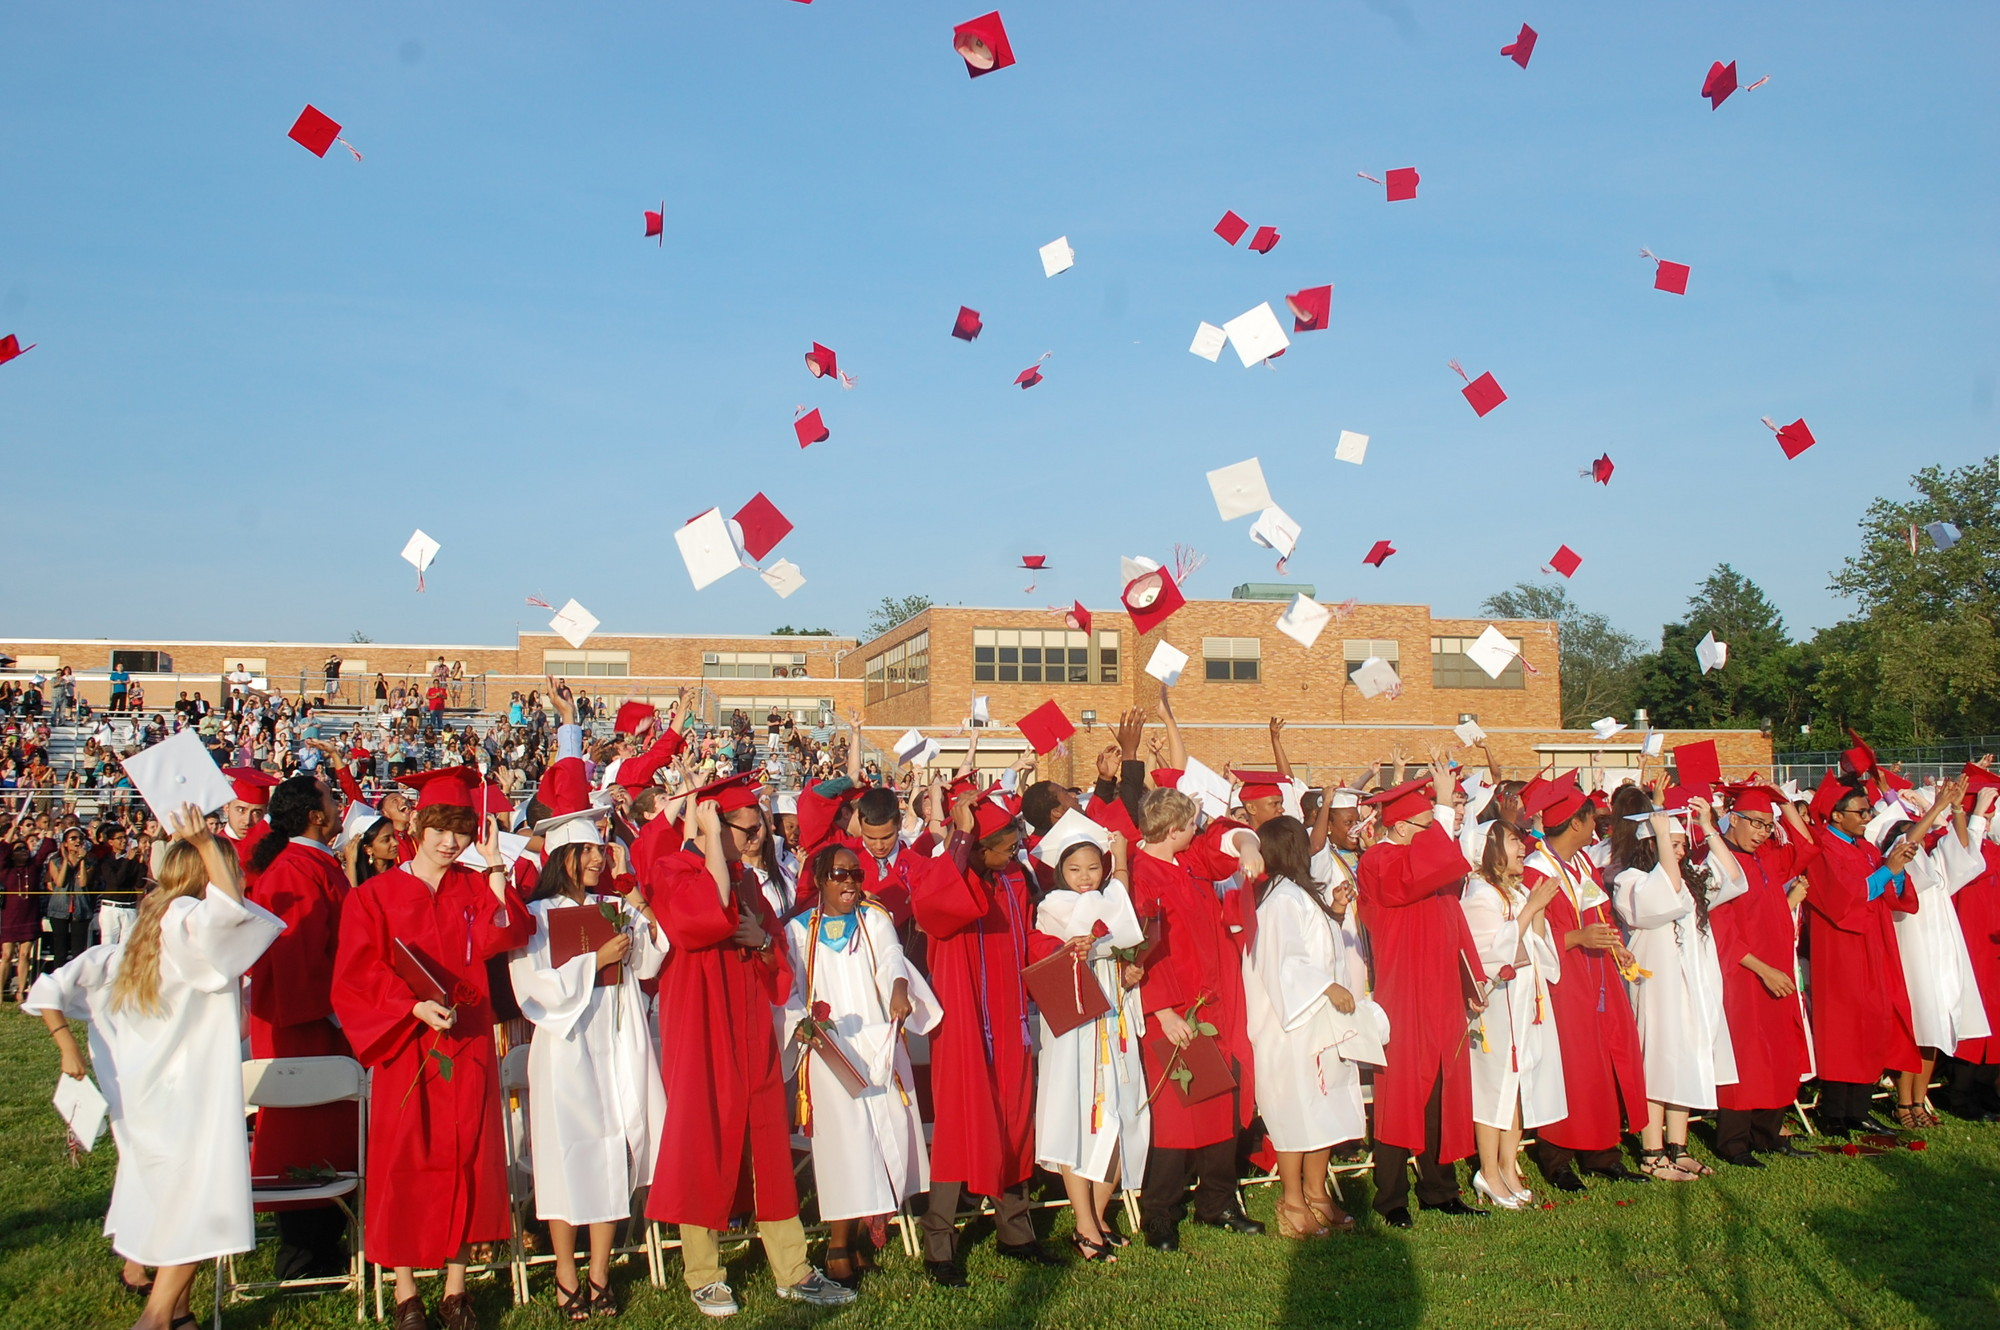 South High graduates celebrated with fanfare.